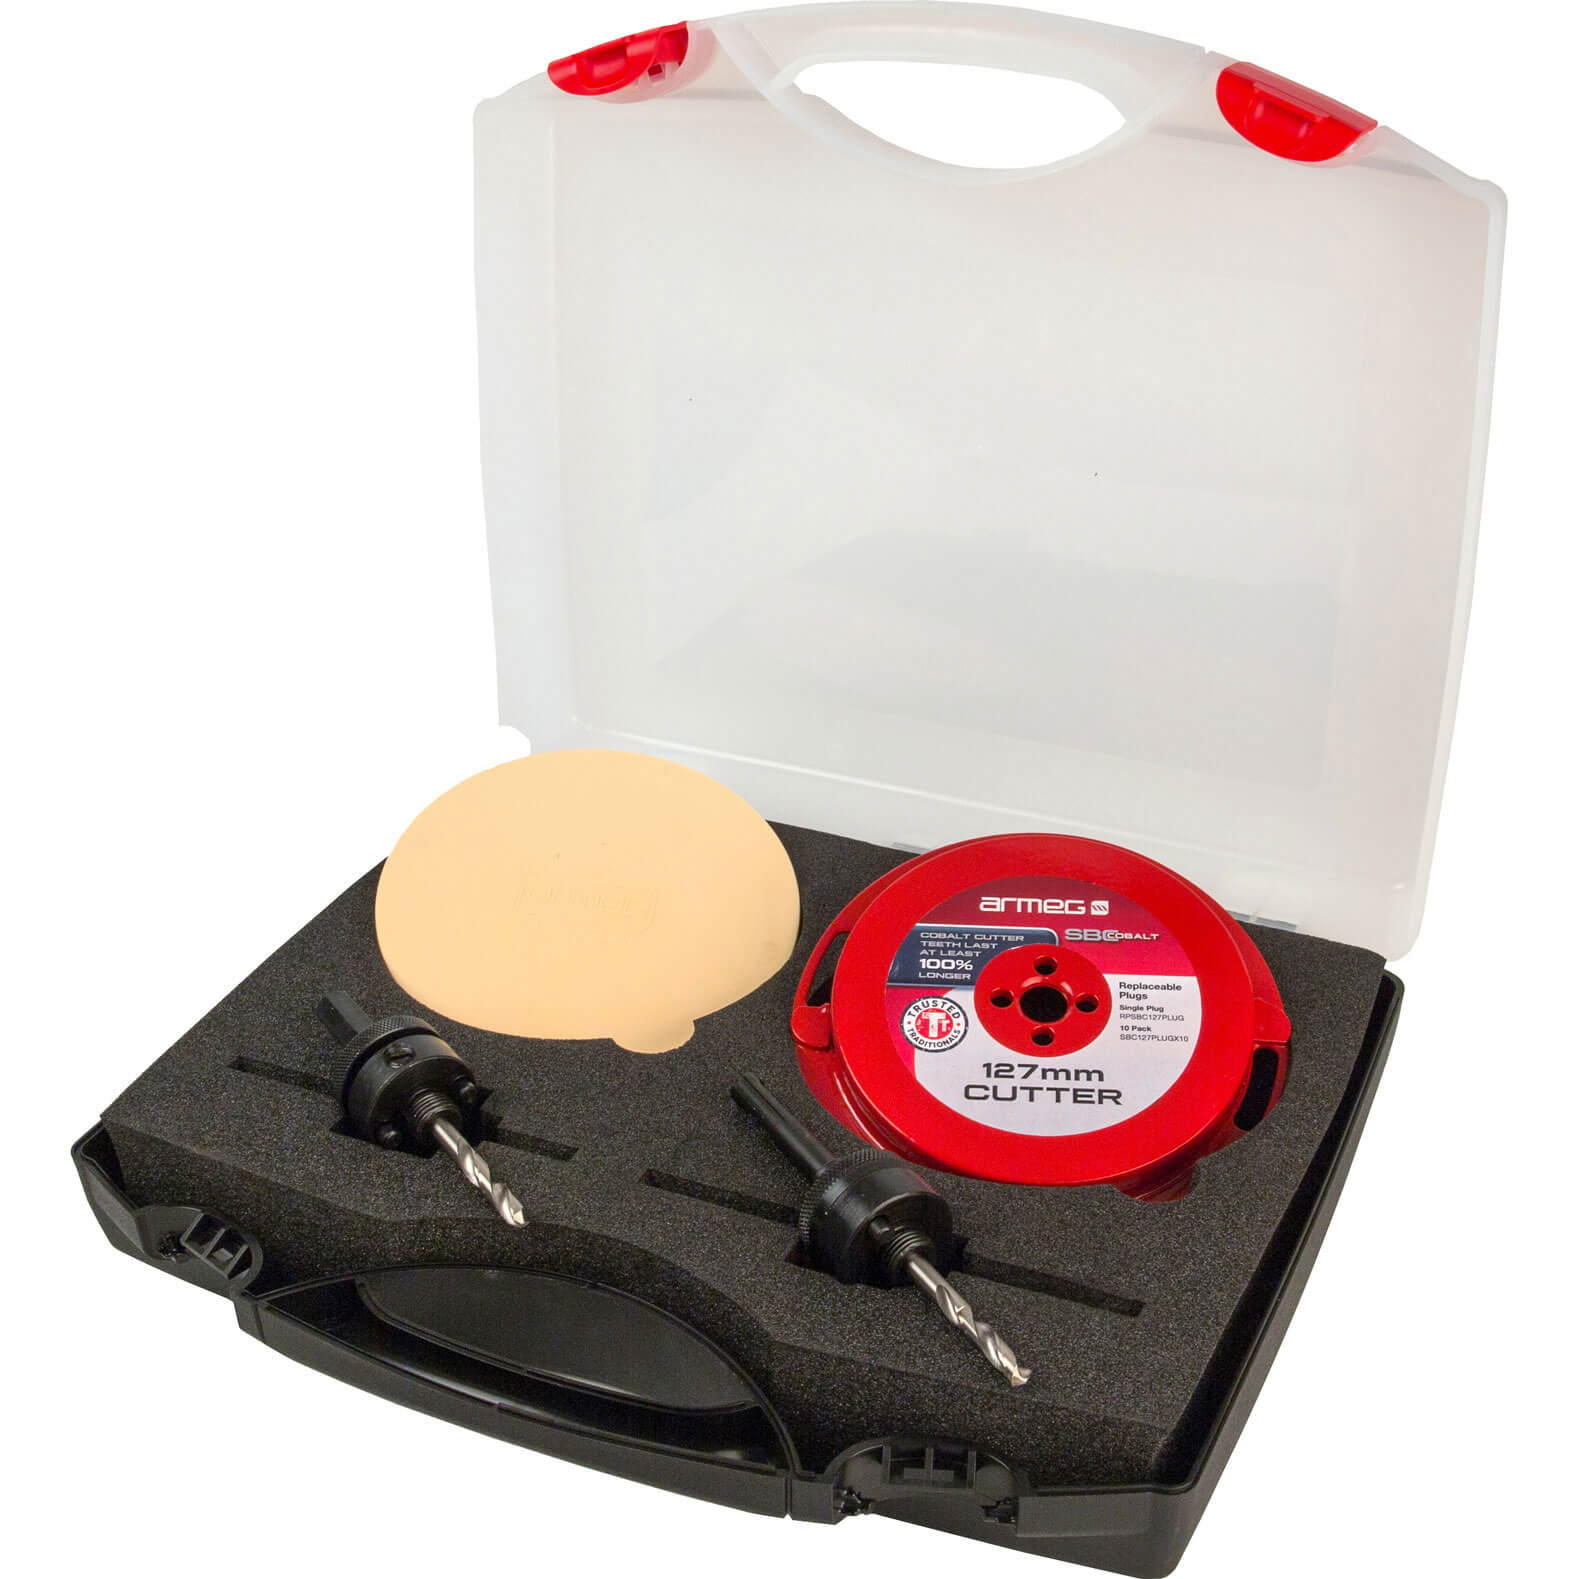 Armeg 127mm Complete Solid Board Cutter Set